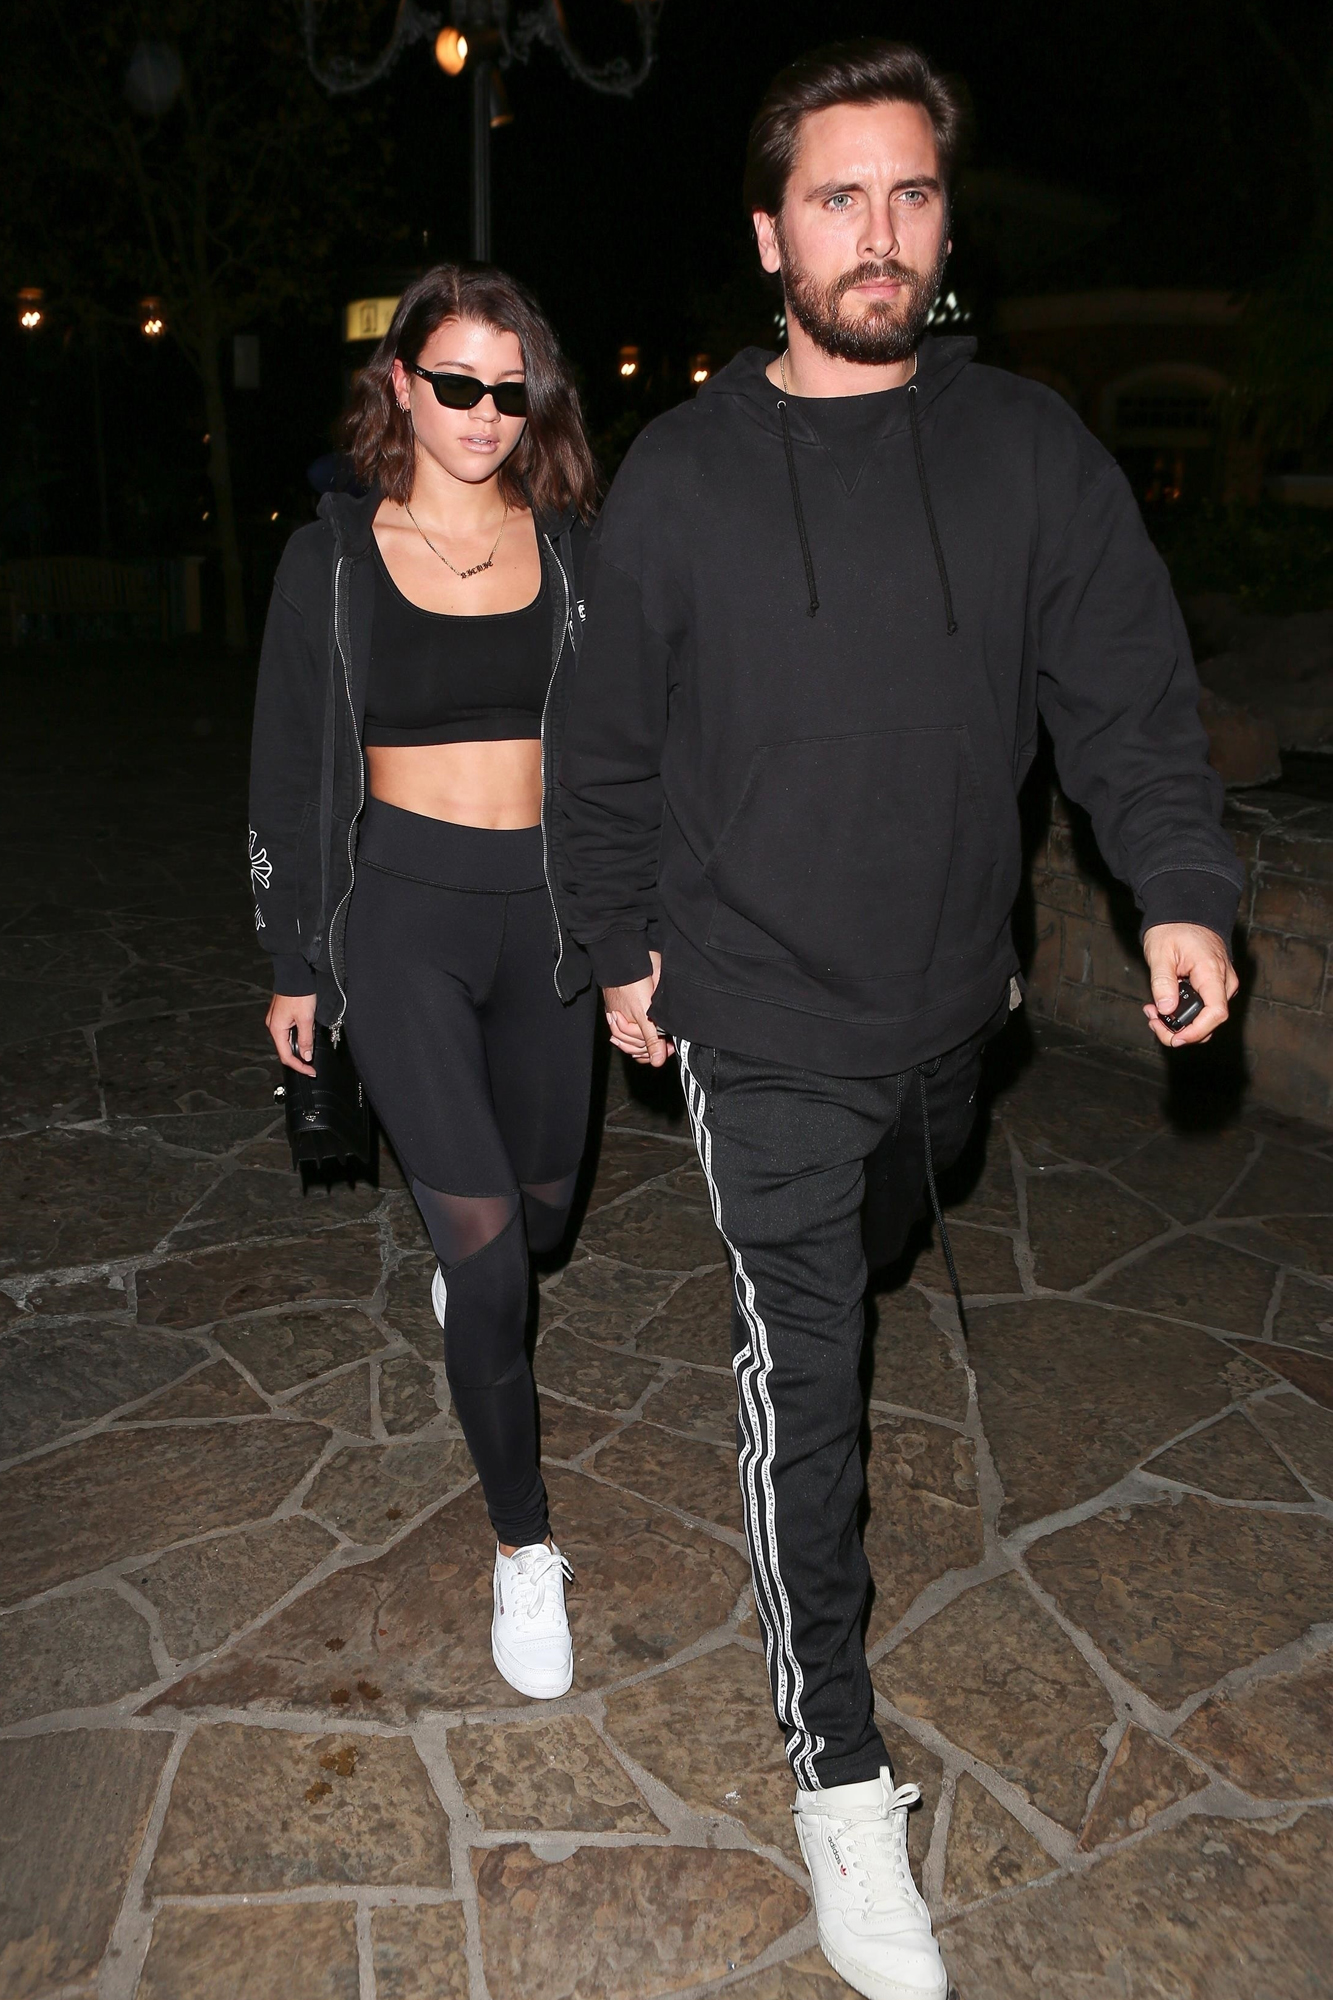 Scott Disick and Sofia Richie are hand-in-hand after a date night